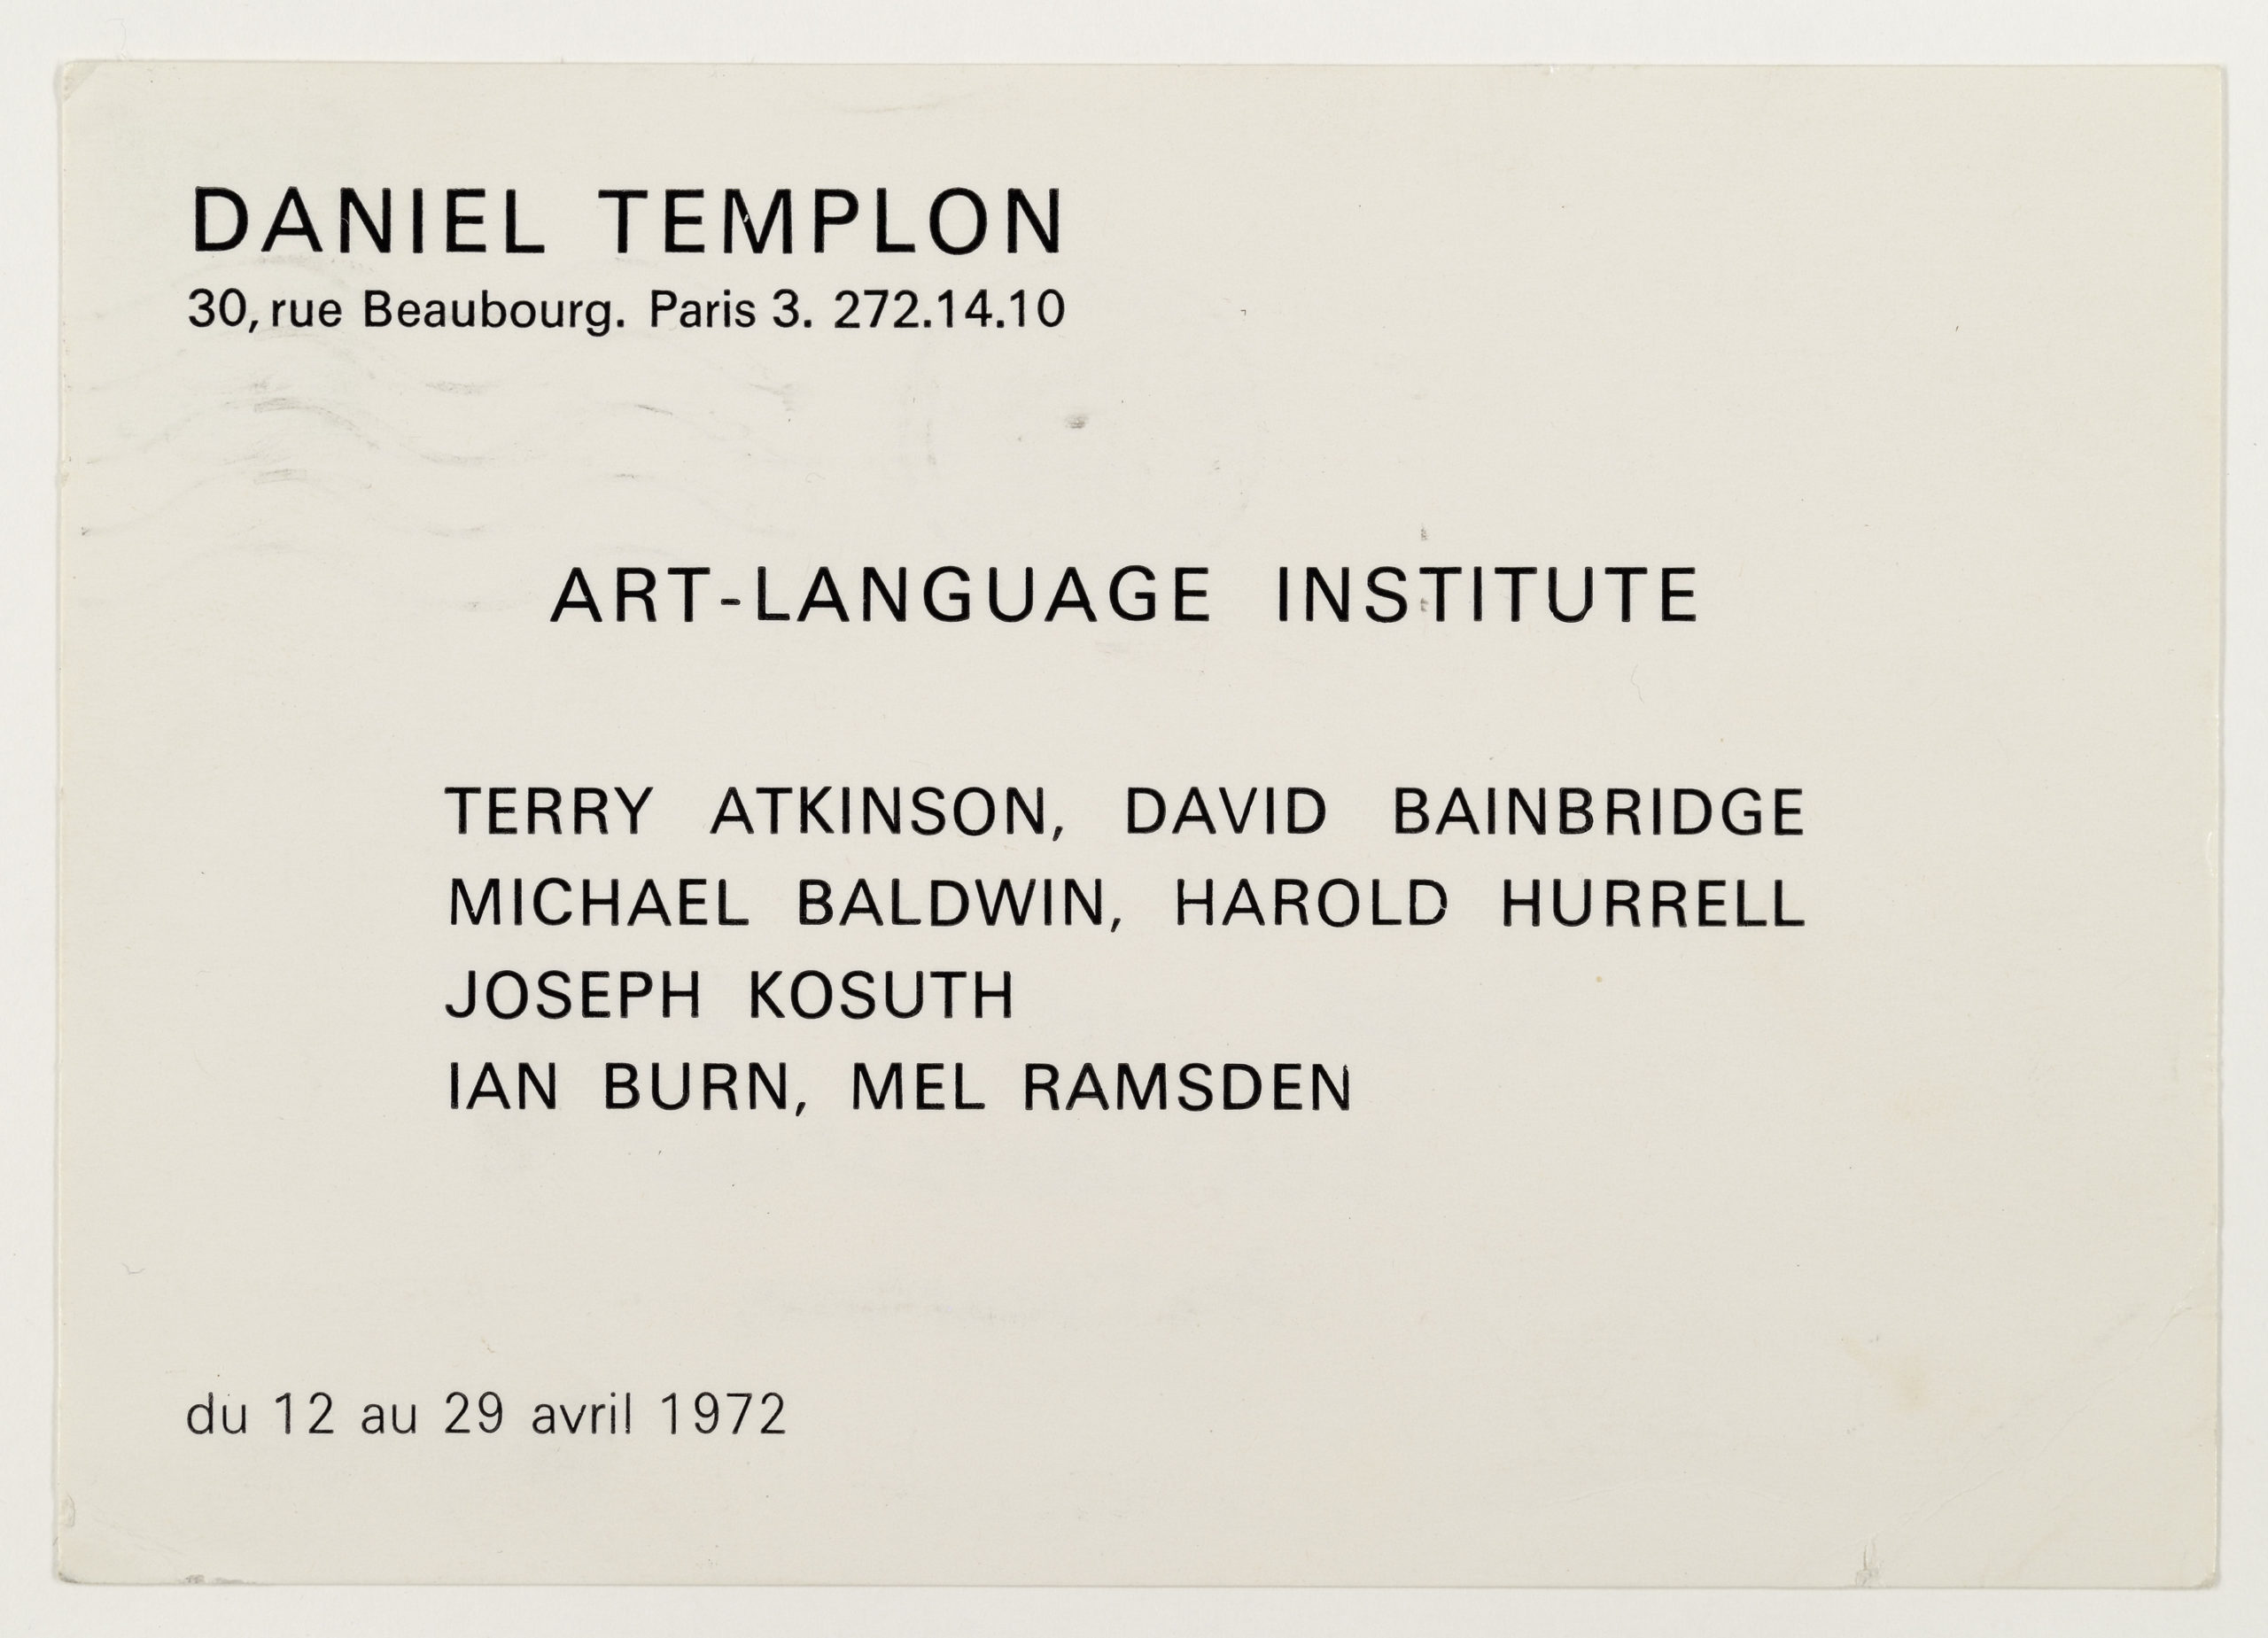 Art & Language Institute, Galerie Templon, Paris 1972 (invitation); Sammlung Marzona, Kunstbibliothek – Staatliche Museen zu Berlin